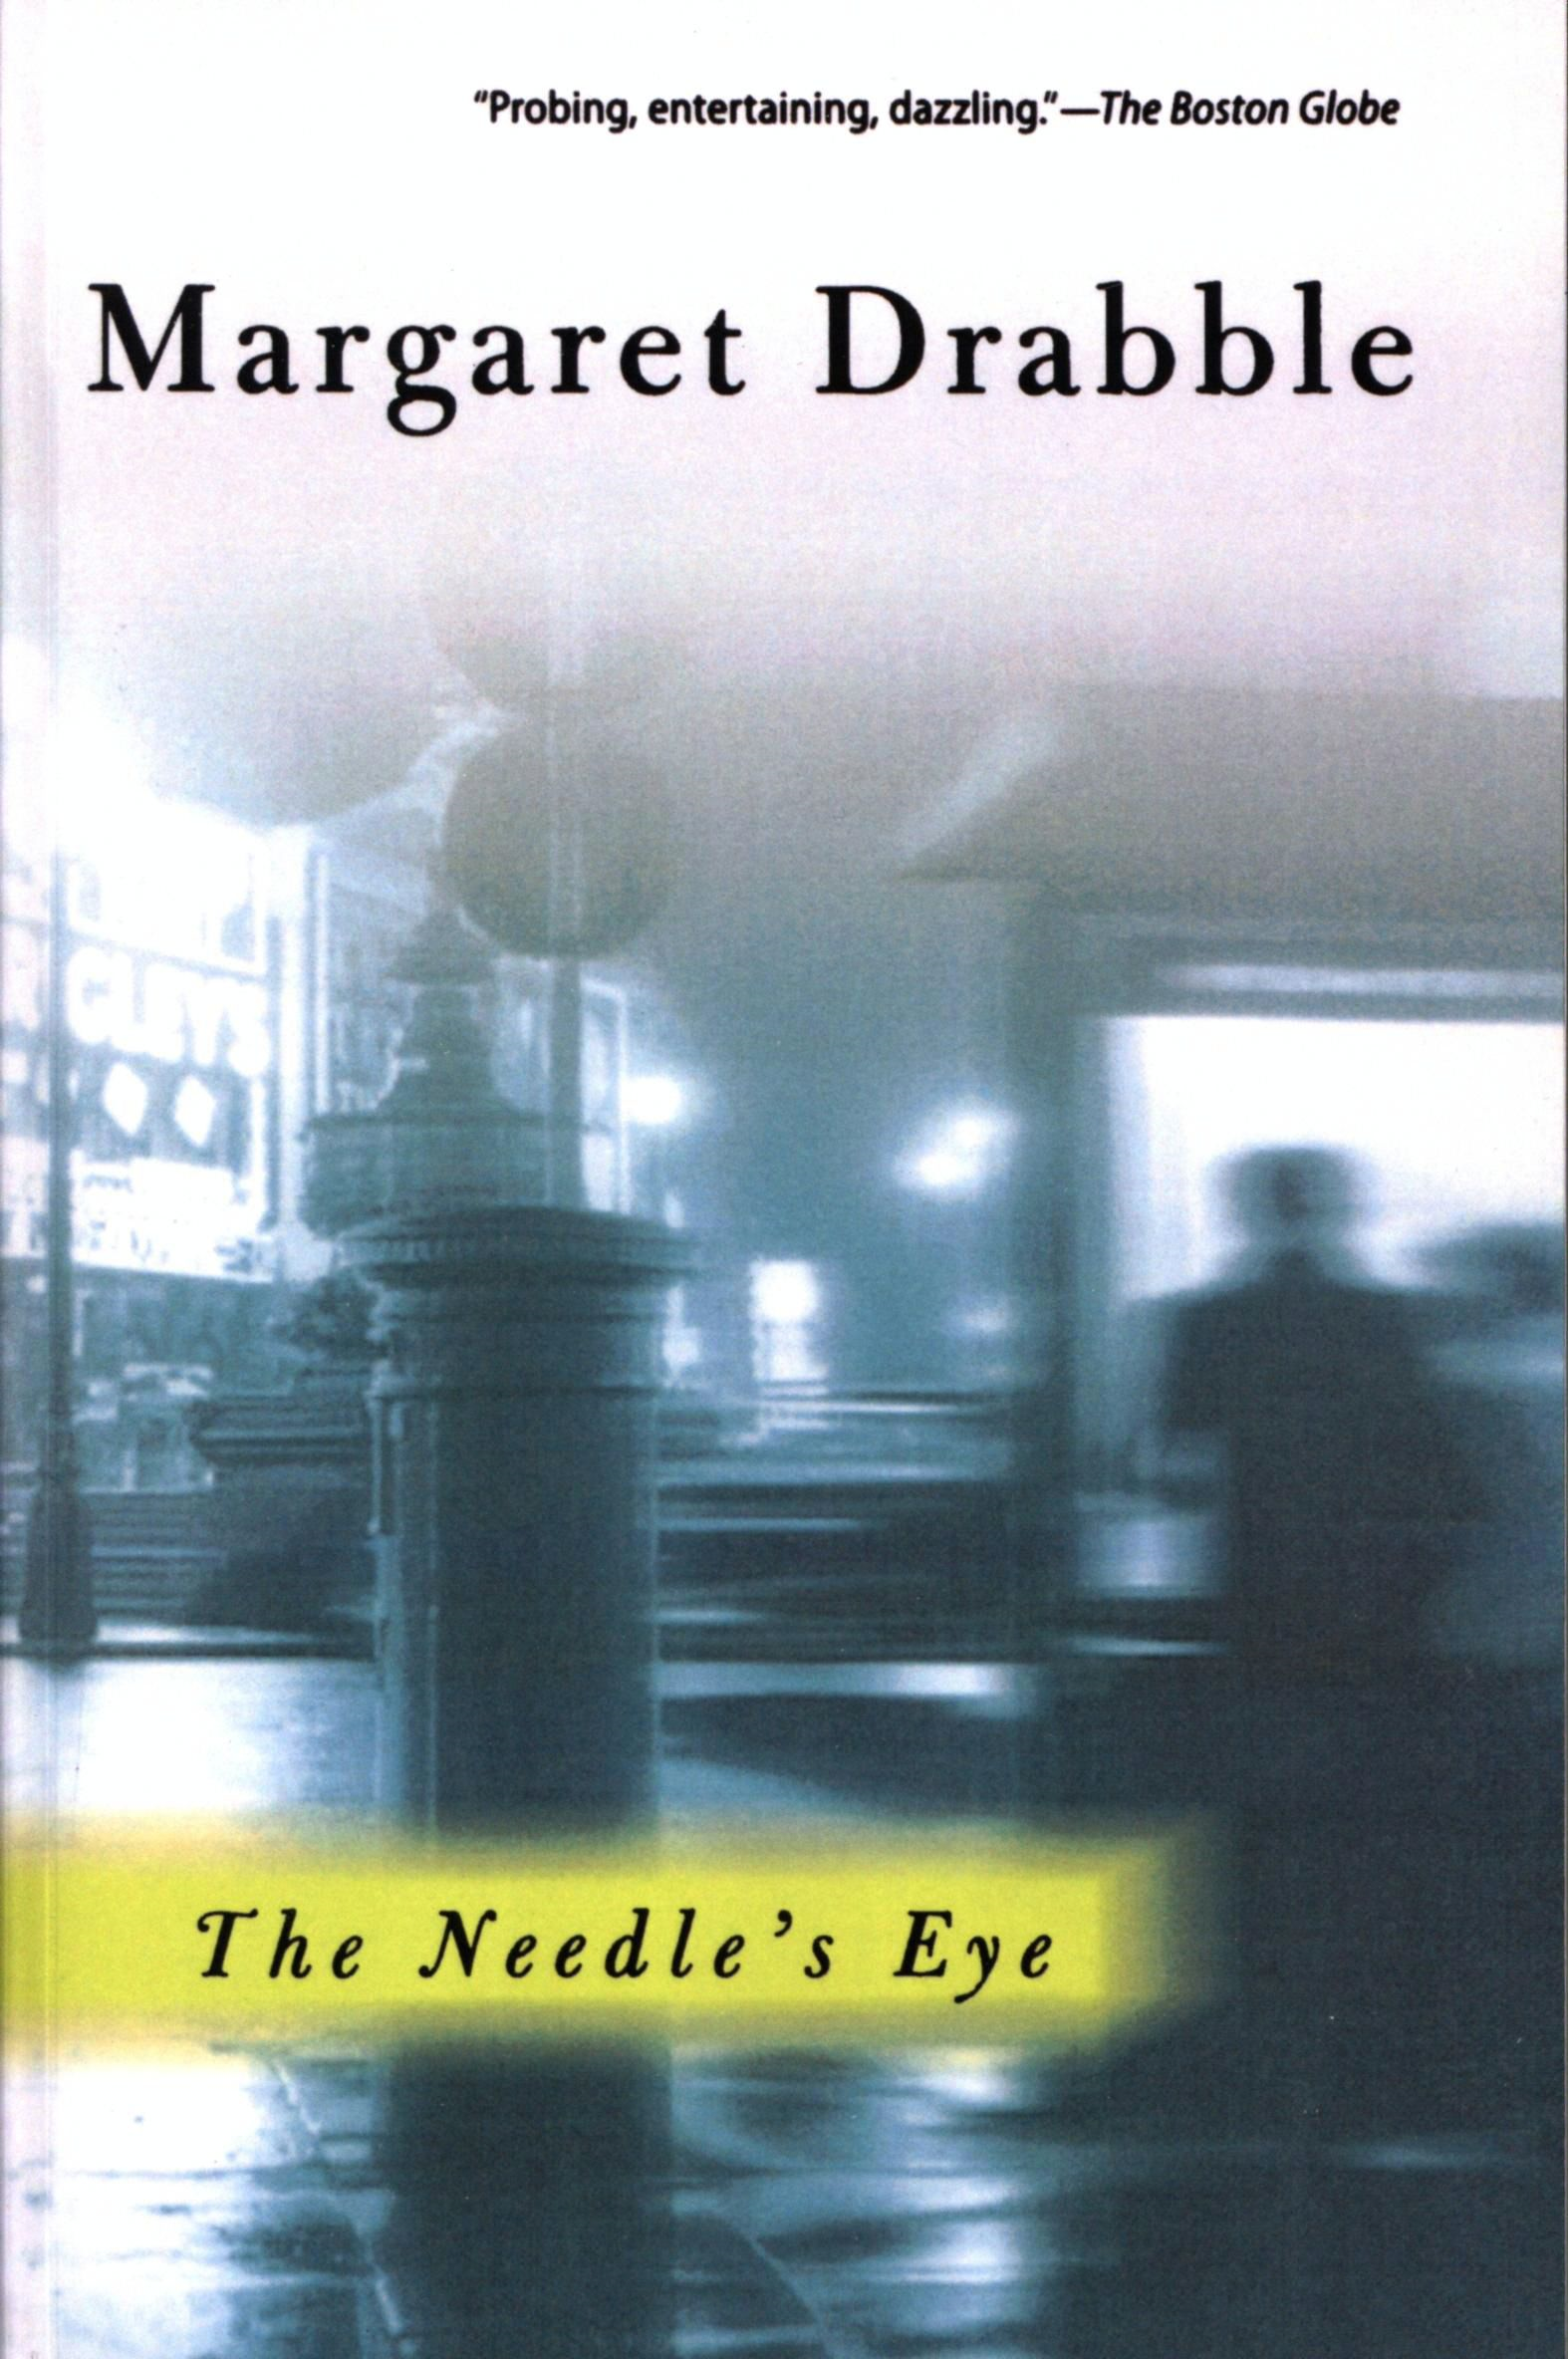 The Needle's Eye By: Margaret Drabble